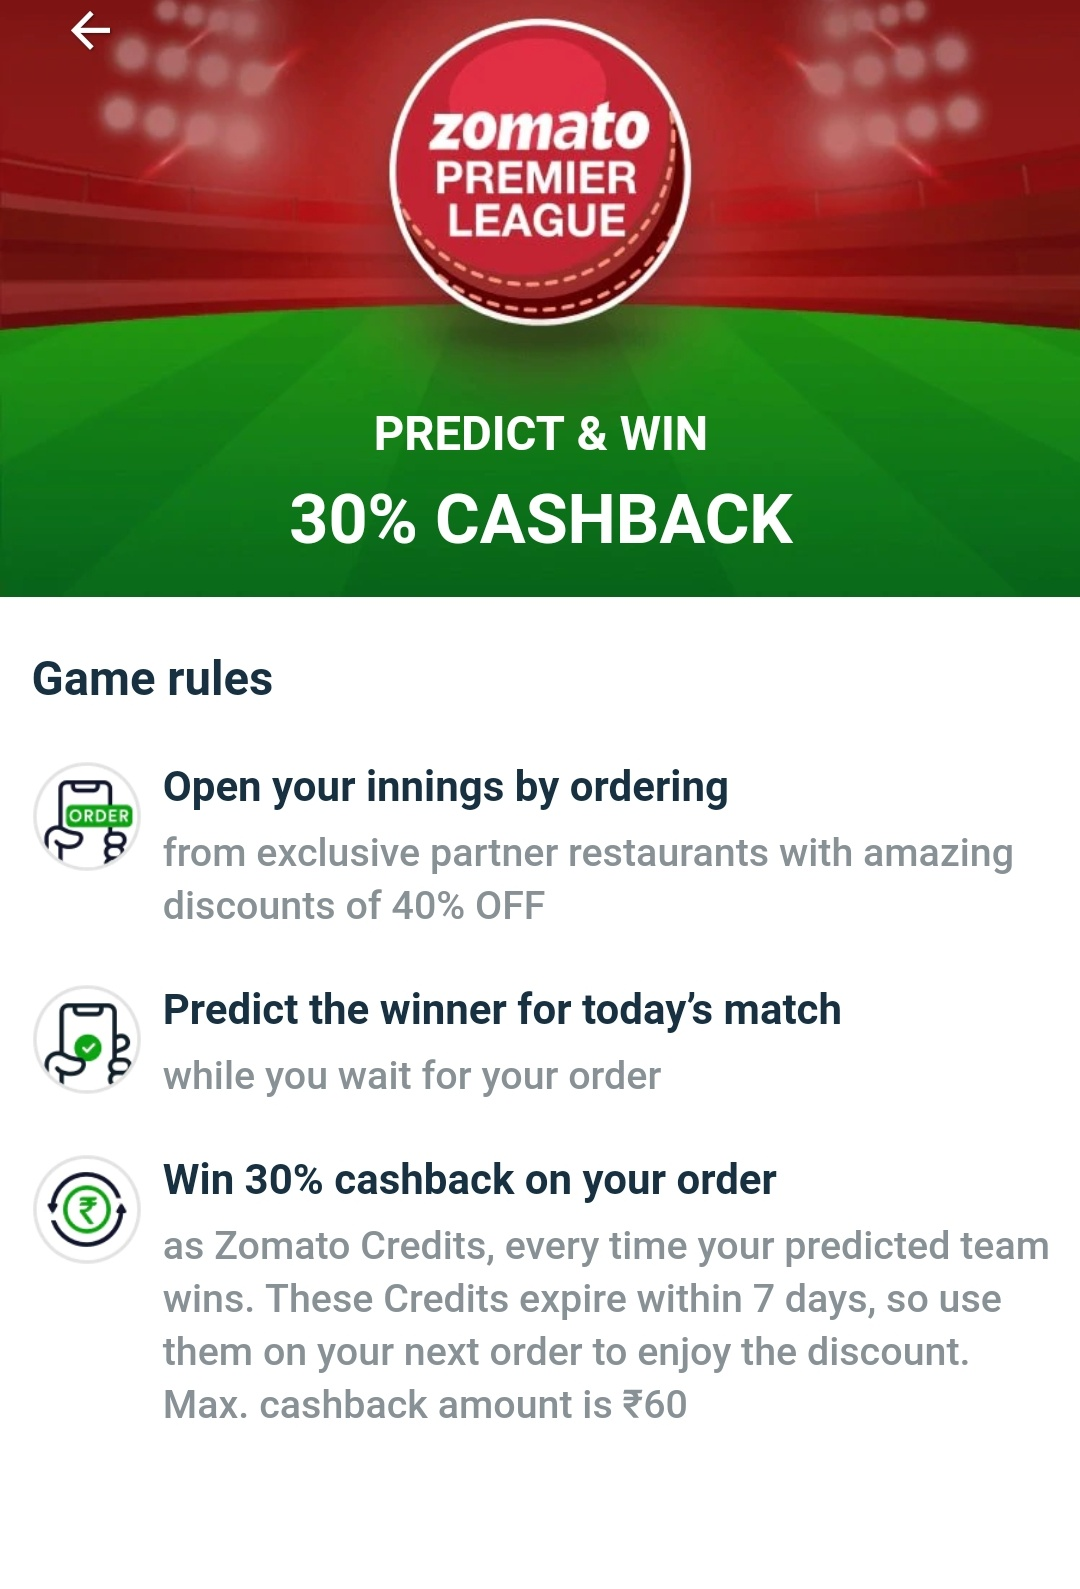 Zomato Premier League - Predict winner and get extra 30% cashback on